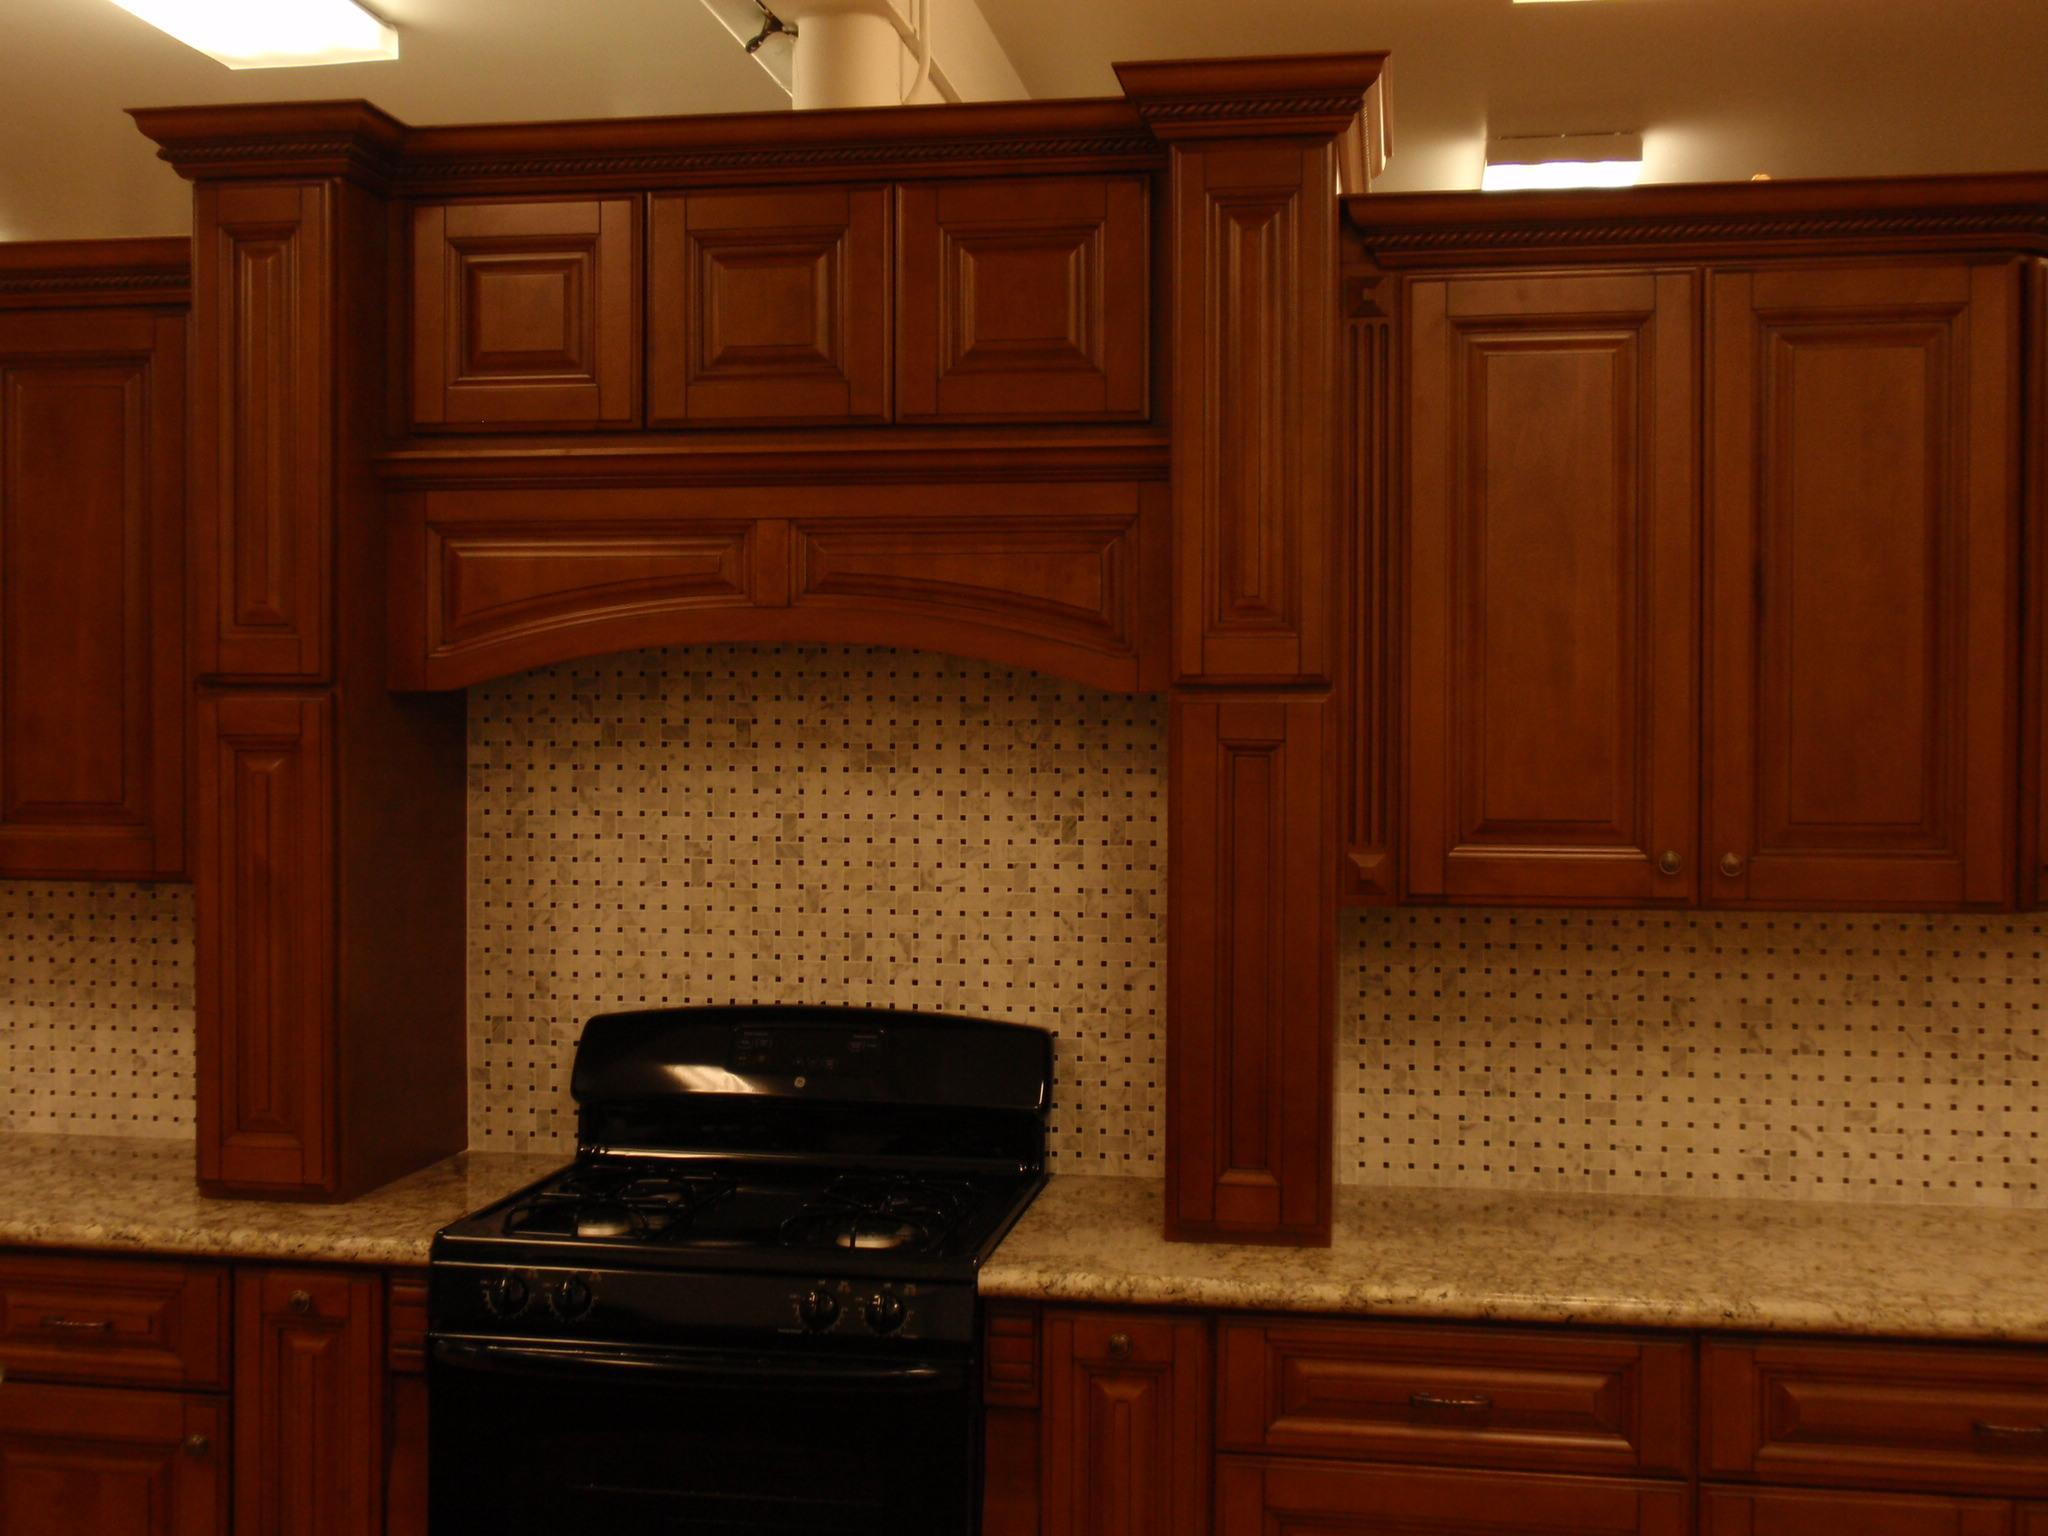 wonderful kitchen american woodmark cabinets in brown with granite countertop and black stove for kitchen furniture ideas